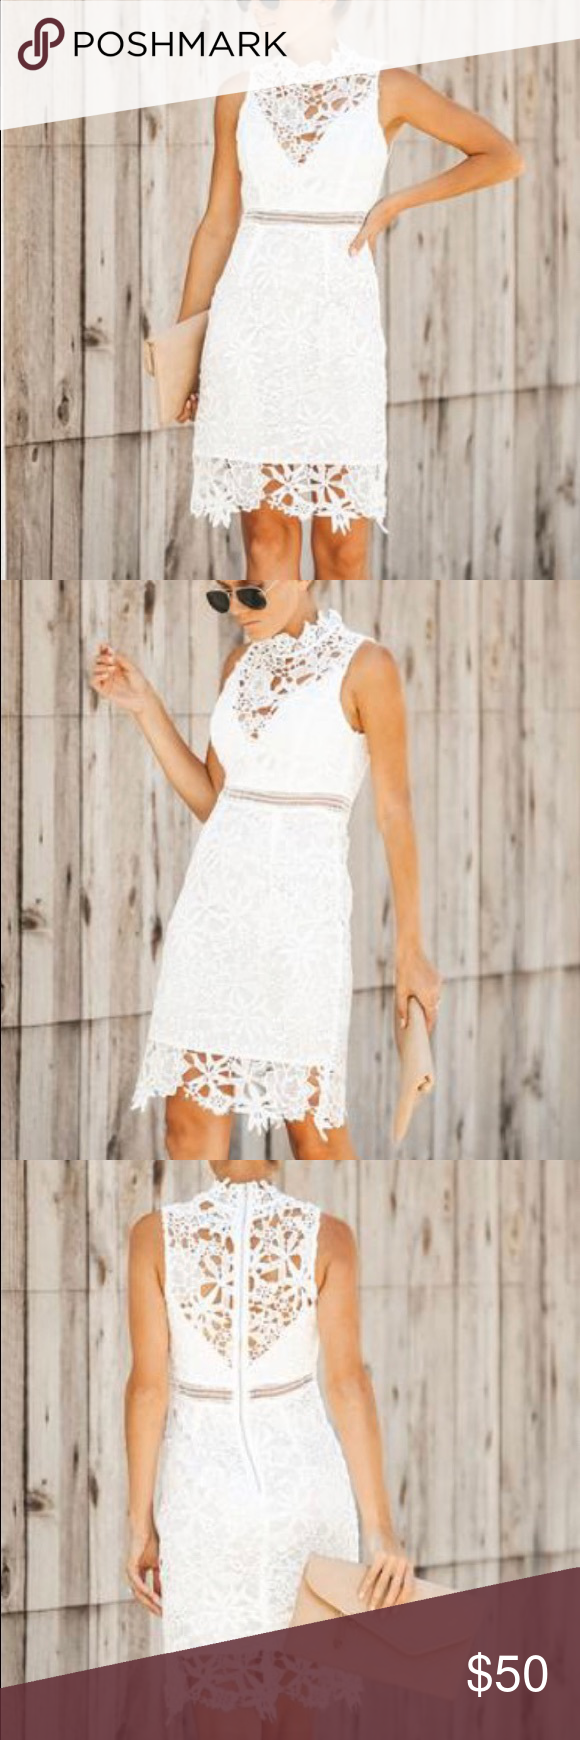 Lover S Game Lace White Dress Vici The Lover S Game Crochet Lace Dress Is So Cute Fitted With A Sheer Crochet Lace Fabr Lace White Dress Vici Dress Dresses [ 1740 x 580 Pixel ]